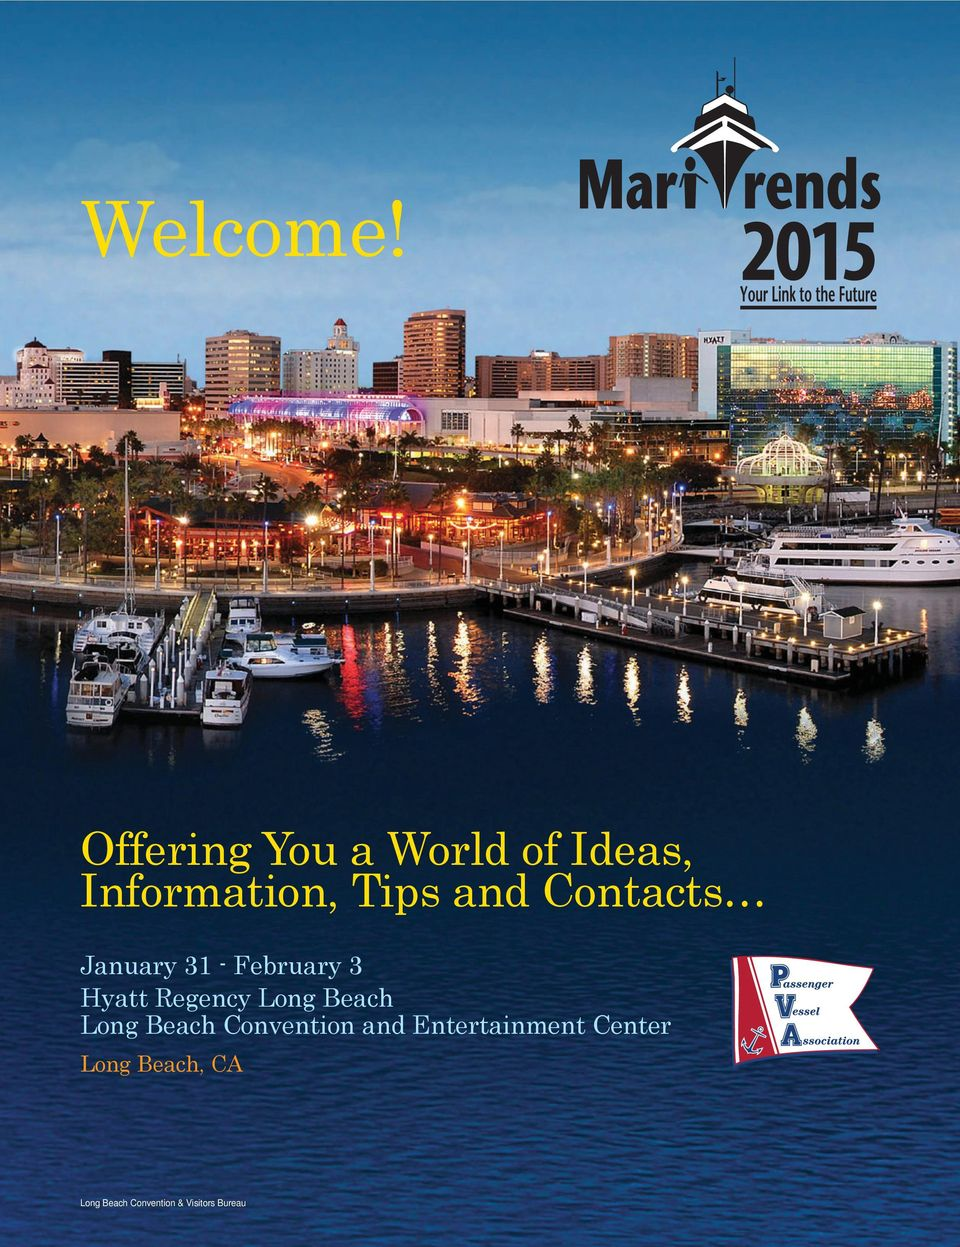 Contacts January 31 - February 3 Hyatt Regency Long